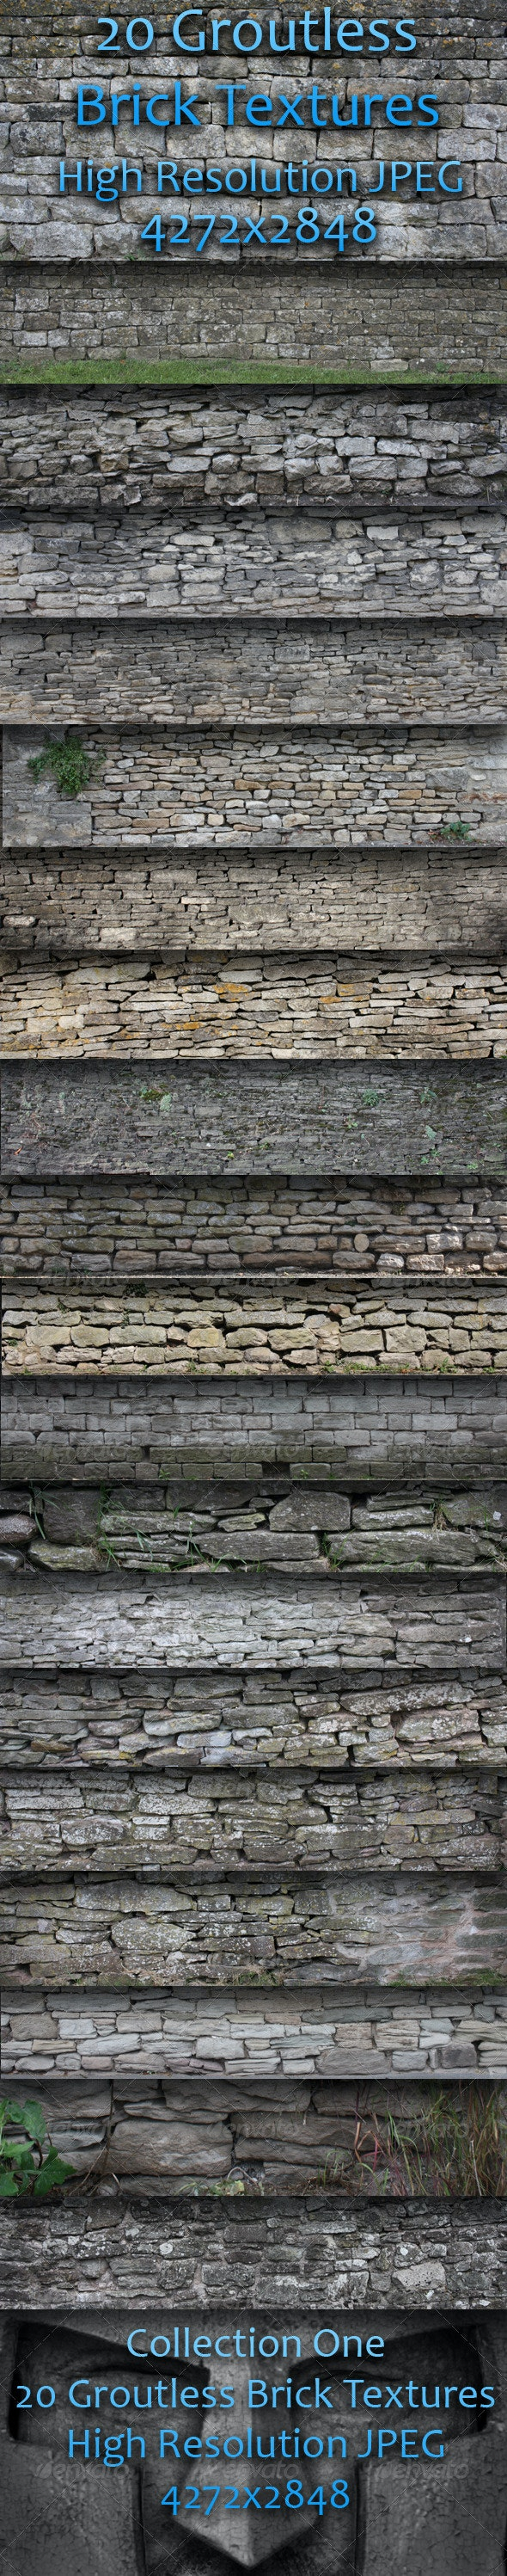 20 Groutless Brick Textures - Pack One  - Stone Textures